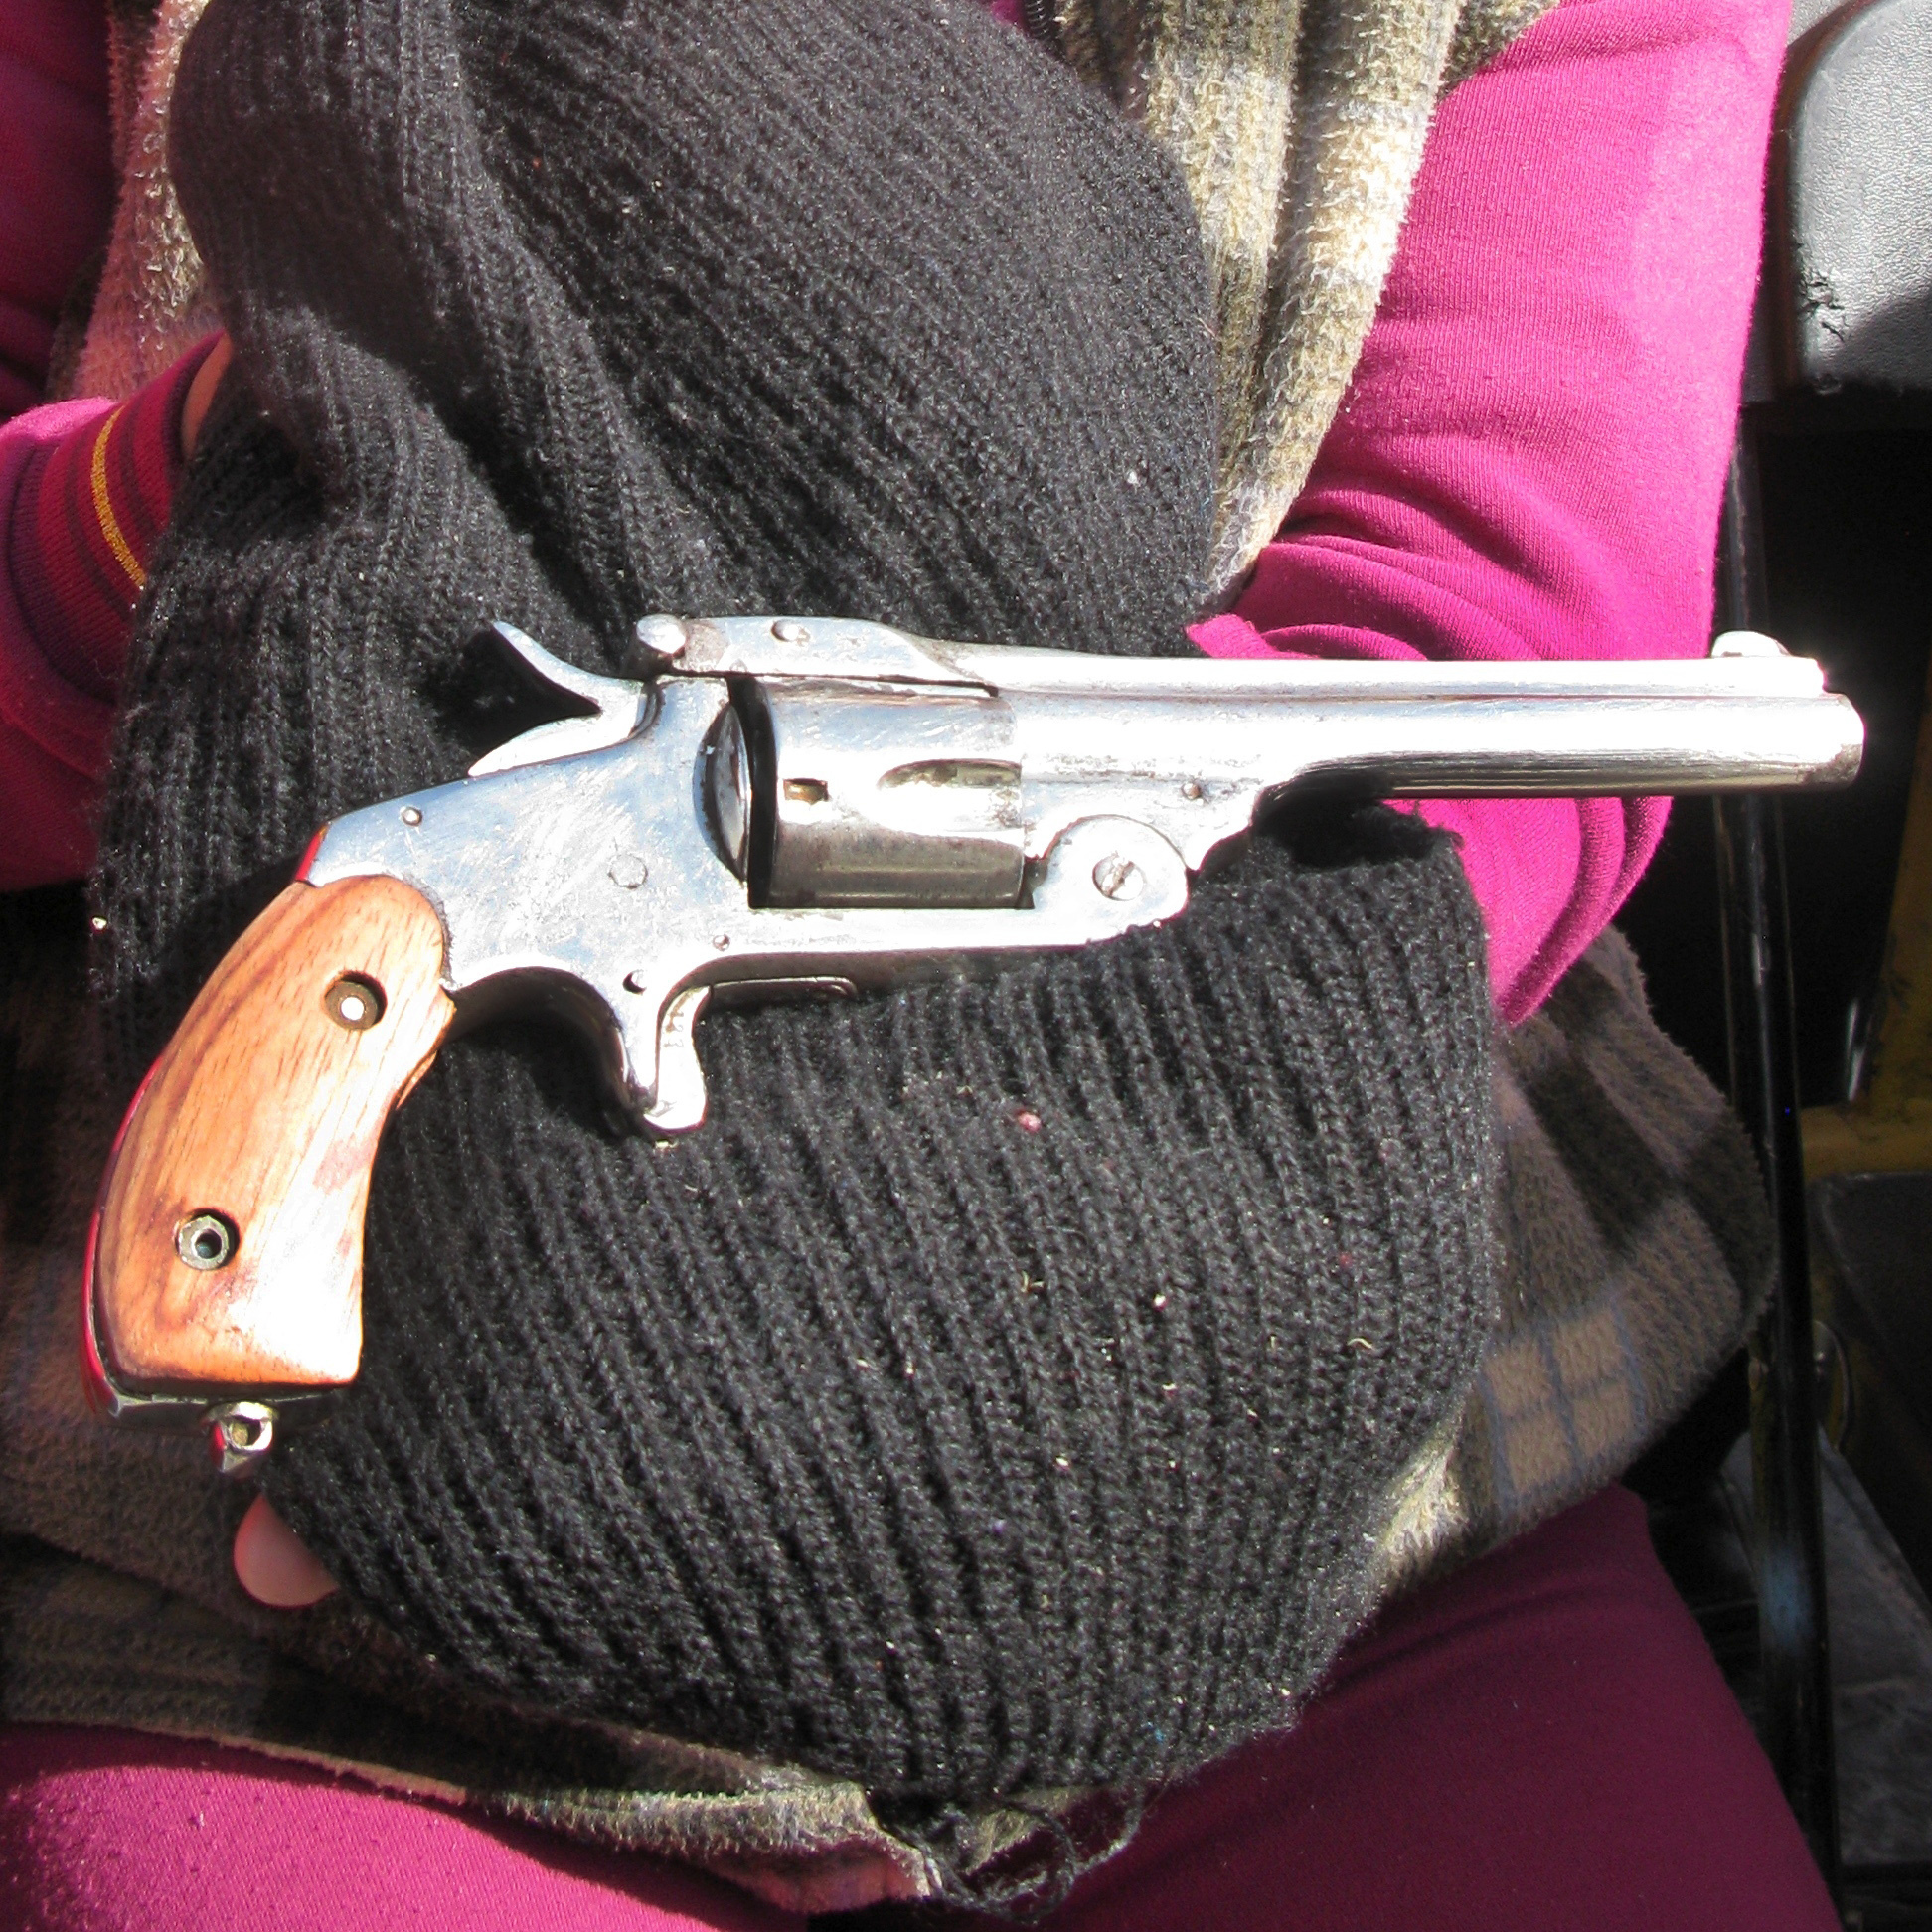 In Mexico City, Sara Martinez Franco holds a .38-caliber revolver that belonged to her grandfather. She traded in the weapon -- which she says was used during the Mexican Revolution -- under the buyback program.